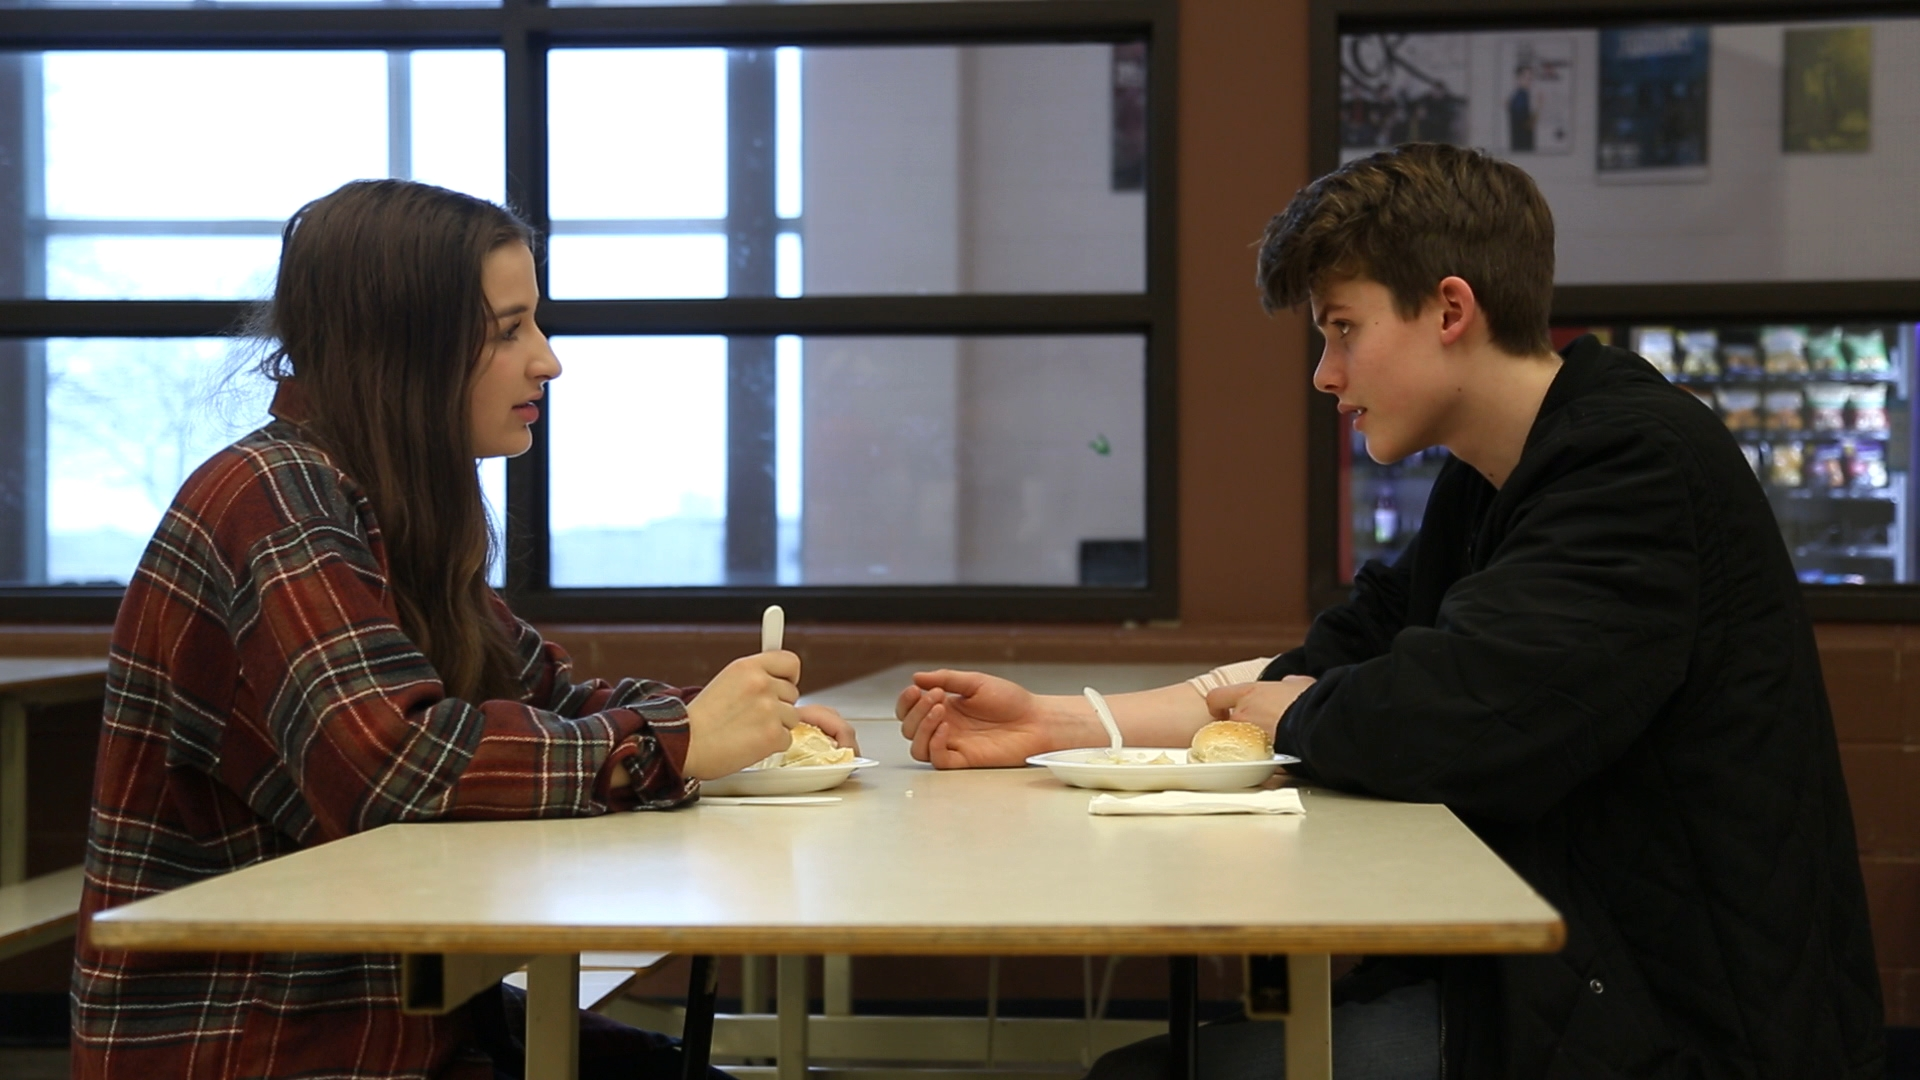 Christophe Boulianne &Vincent Neveu Jason & Margot   Two teenagers are in a rehab centre trying to cope with their addictions.